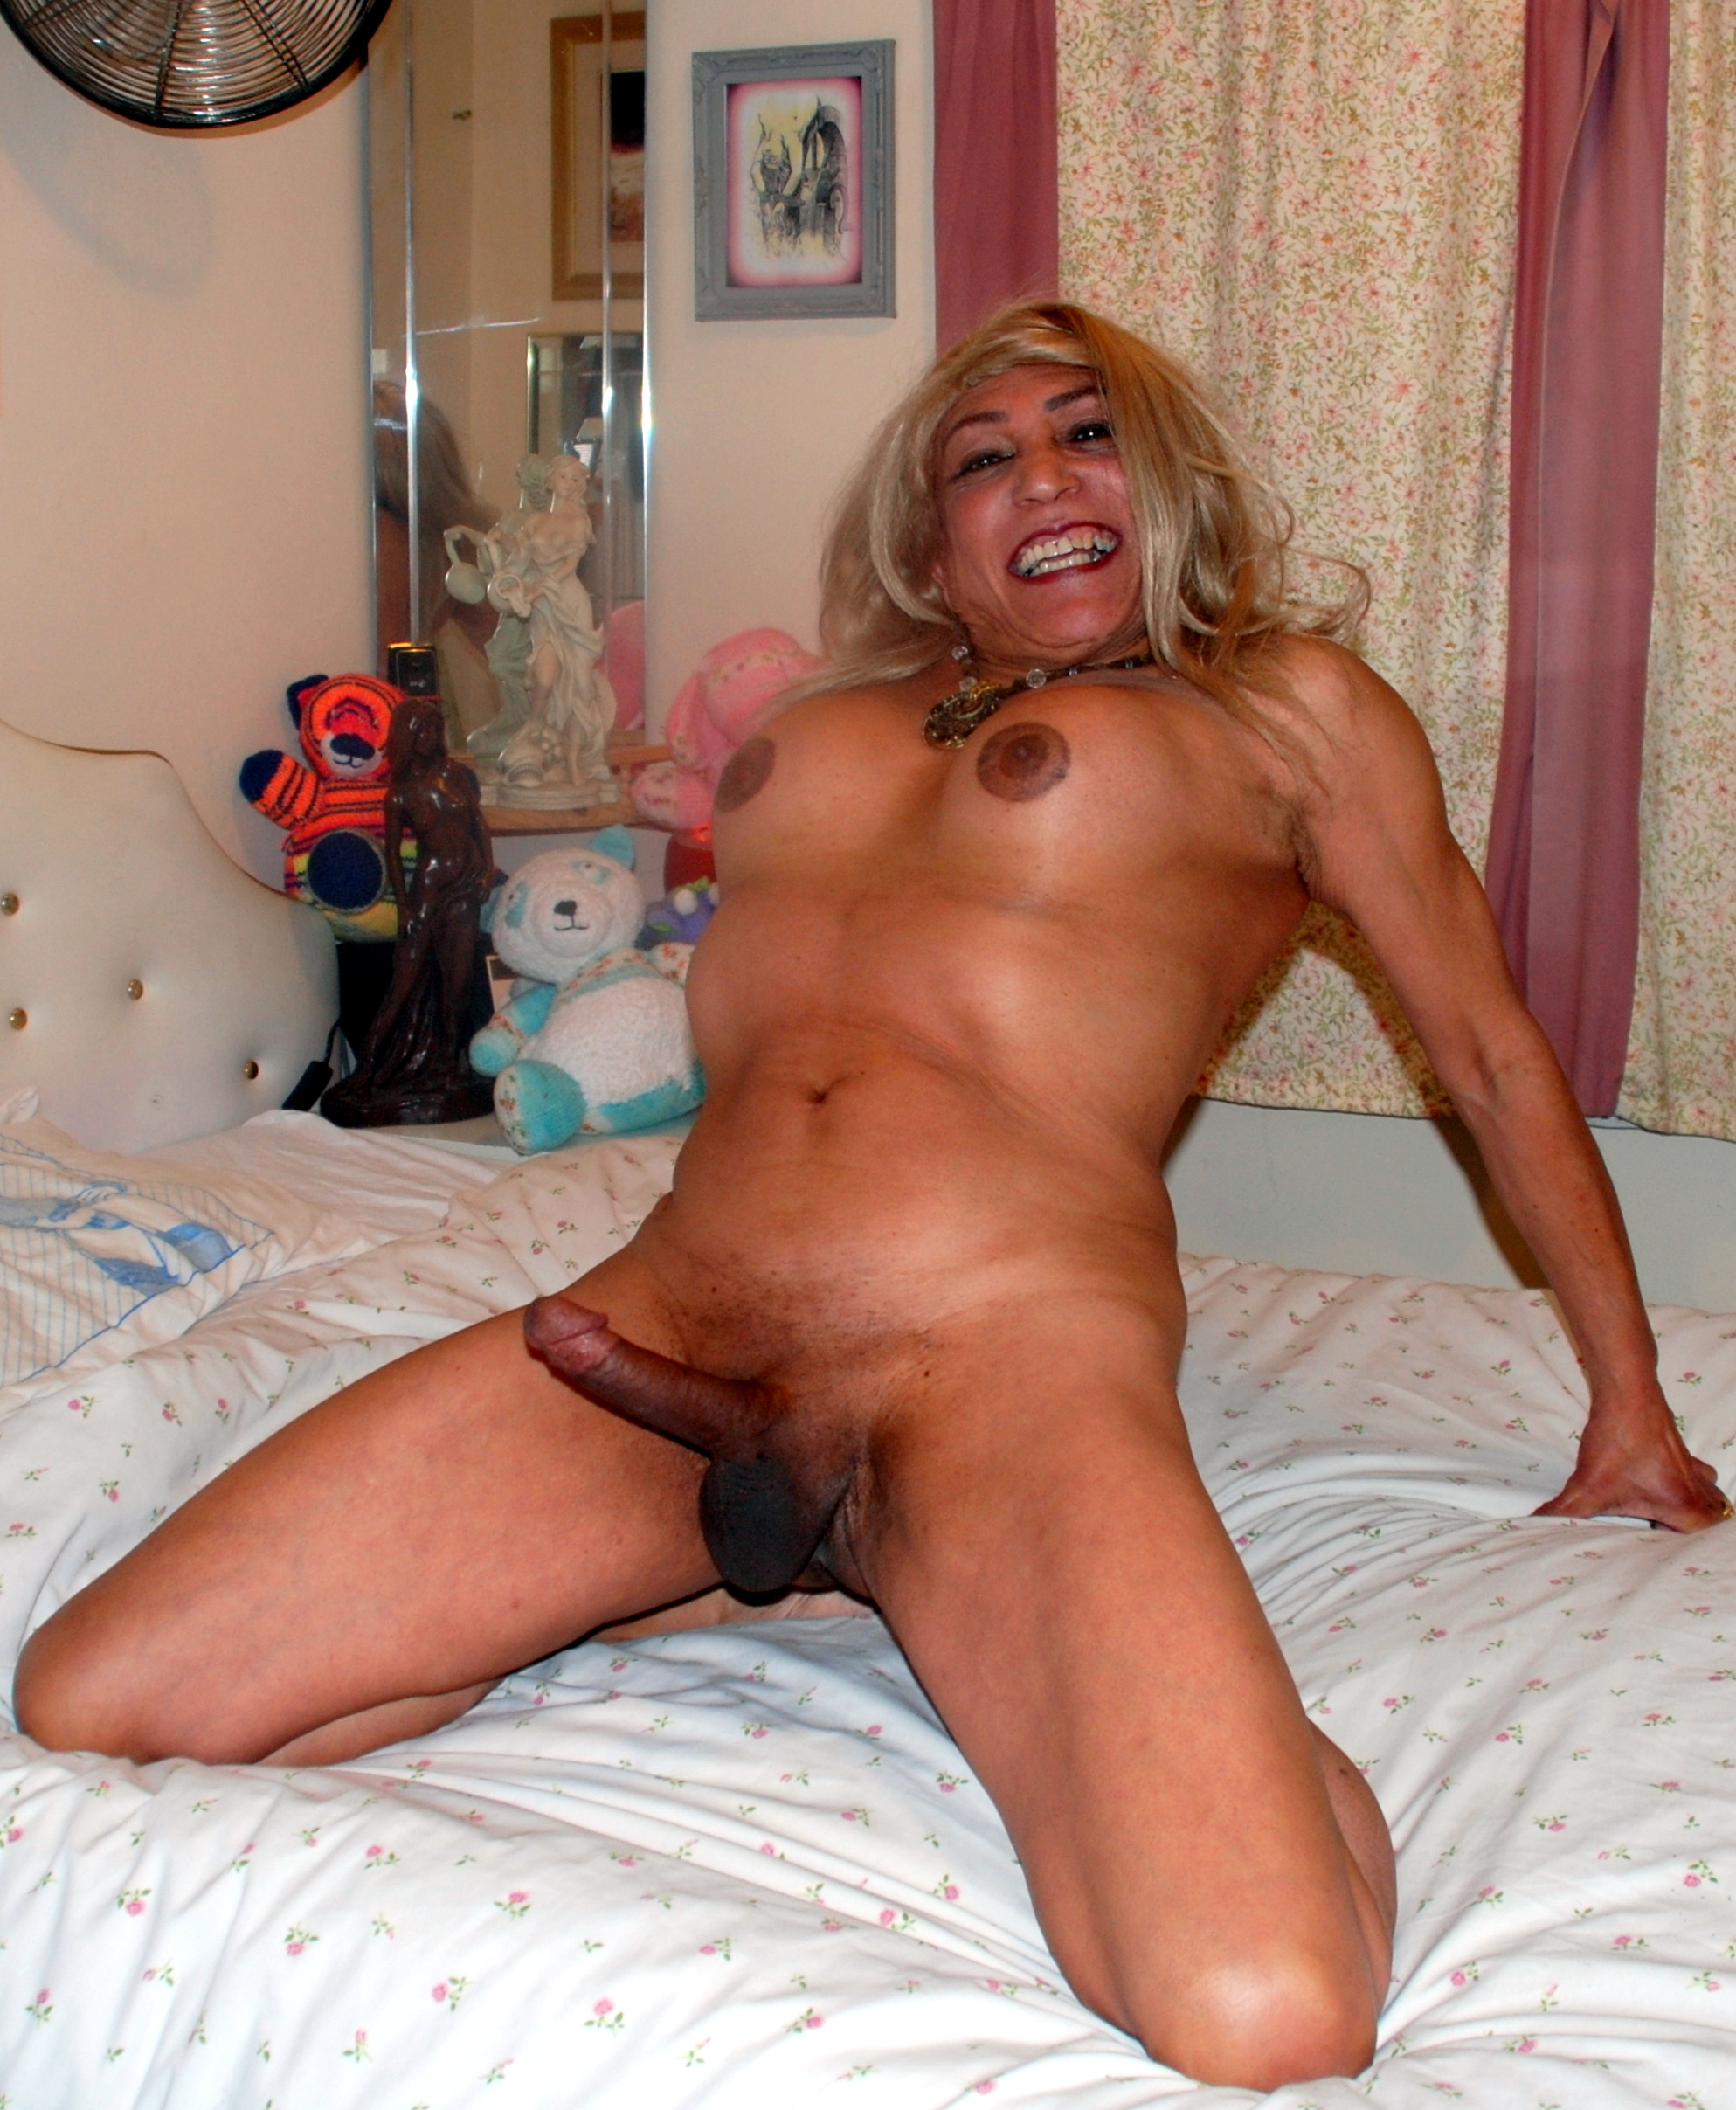 Ann coulter nude playboy pics